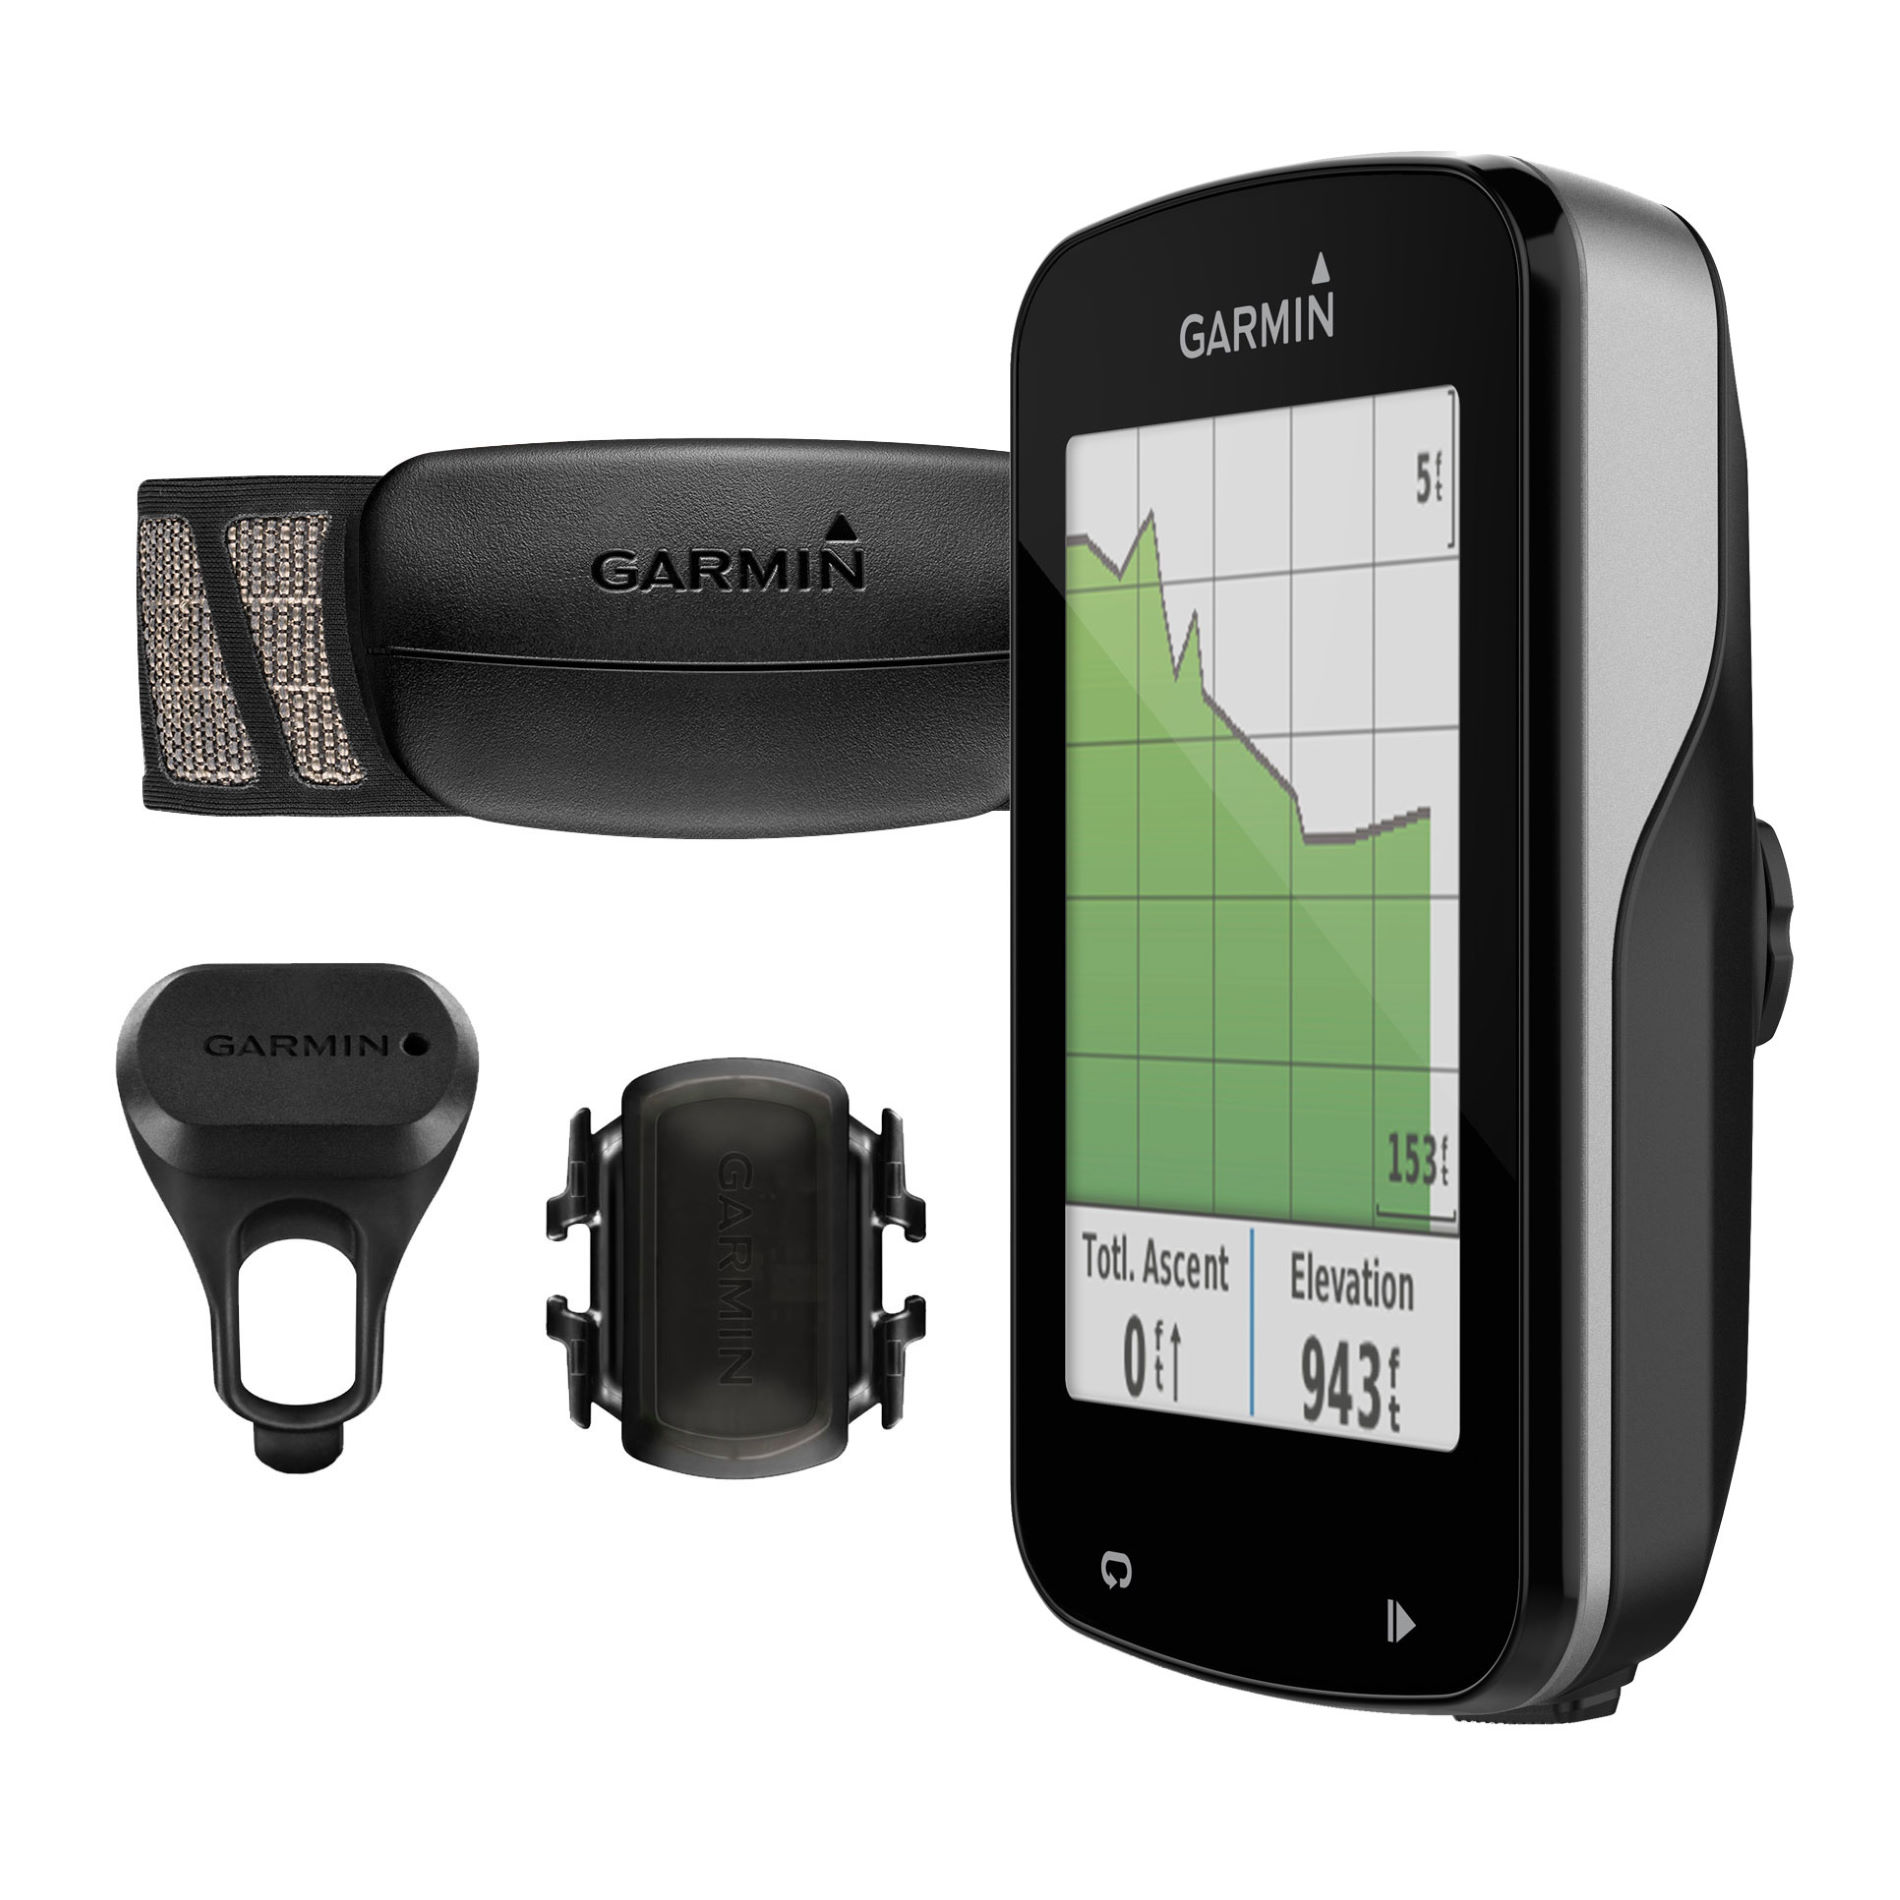 Garmin Cycle Computer >> Garmin Edge 820 Bundle Gps Computer Heart Rate Monitor Cadence